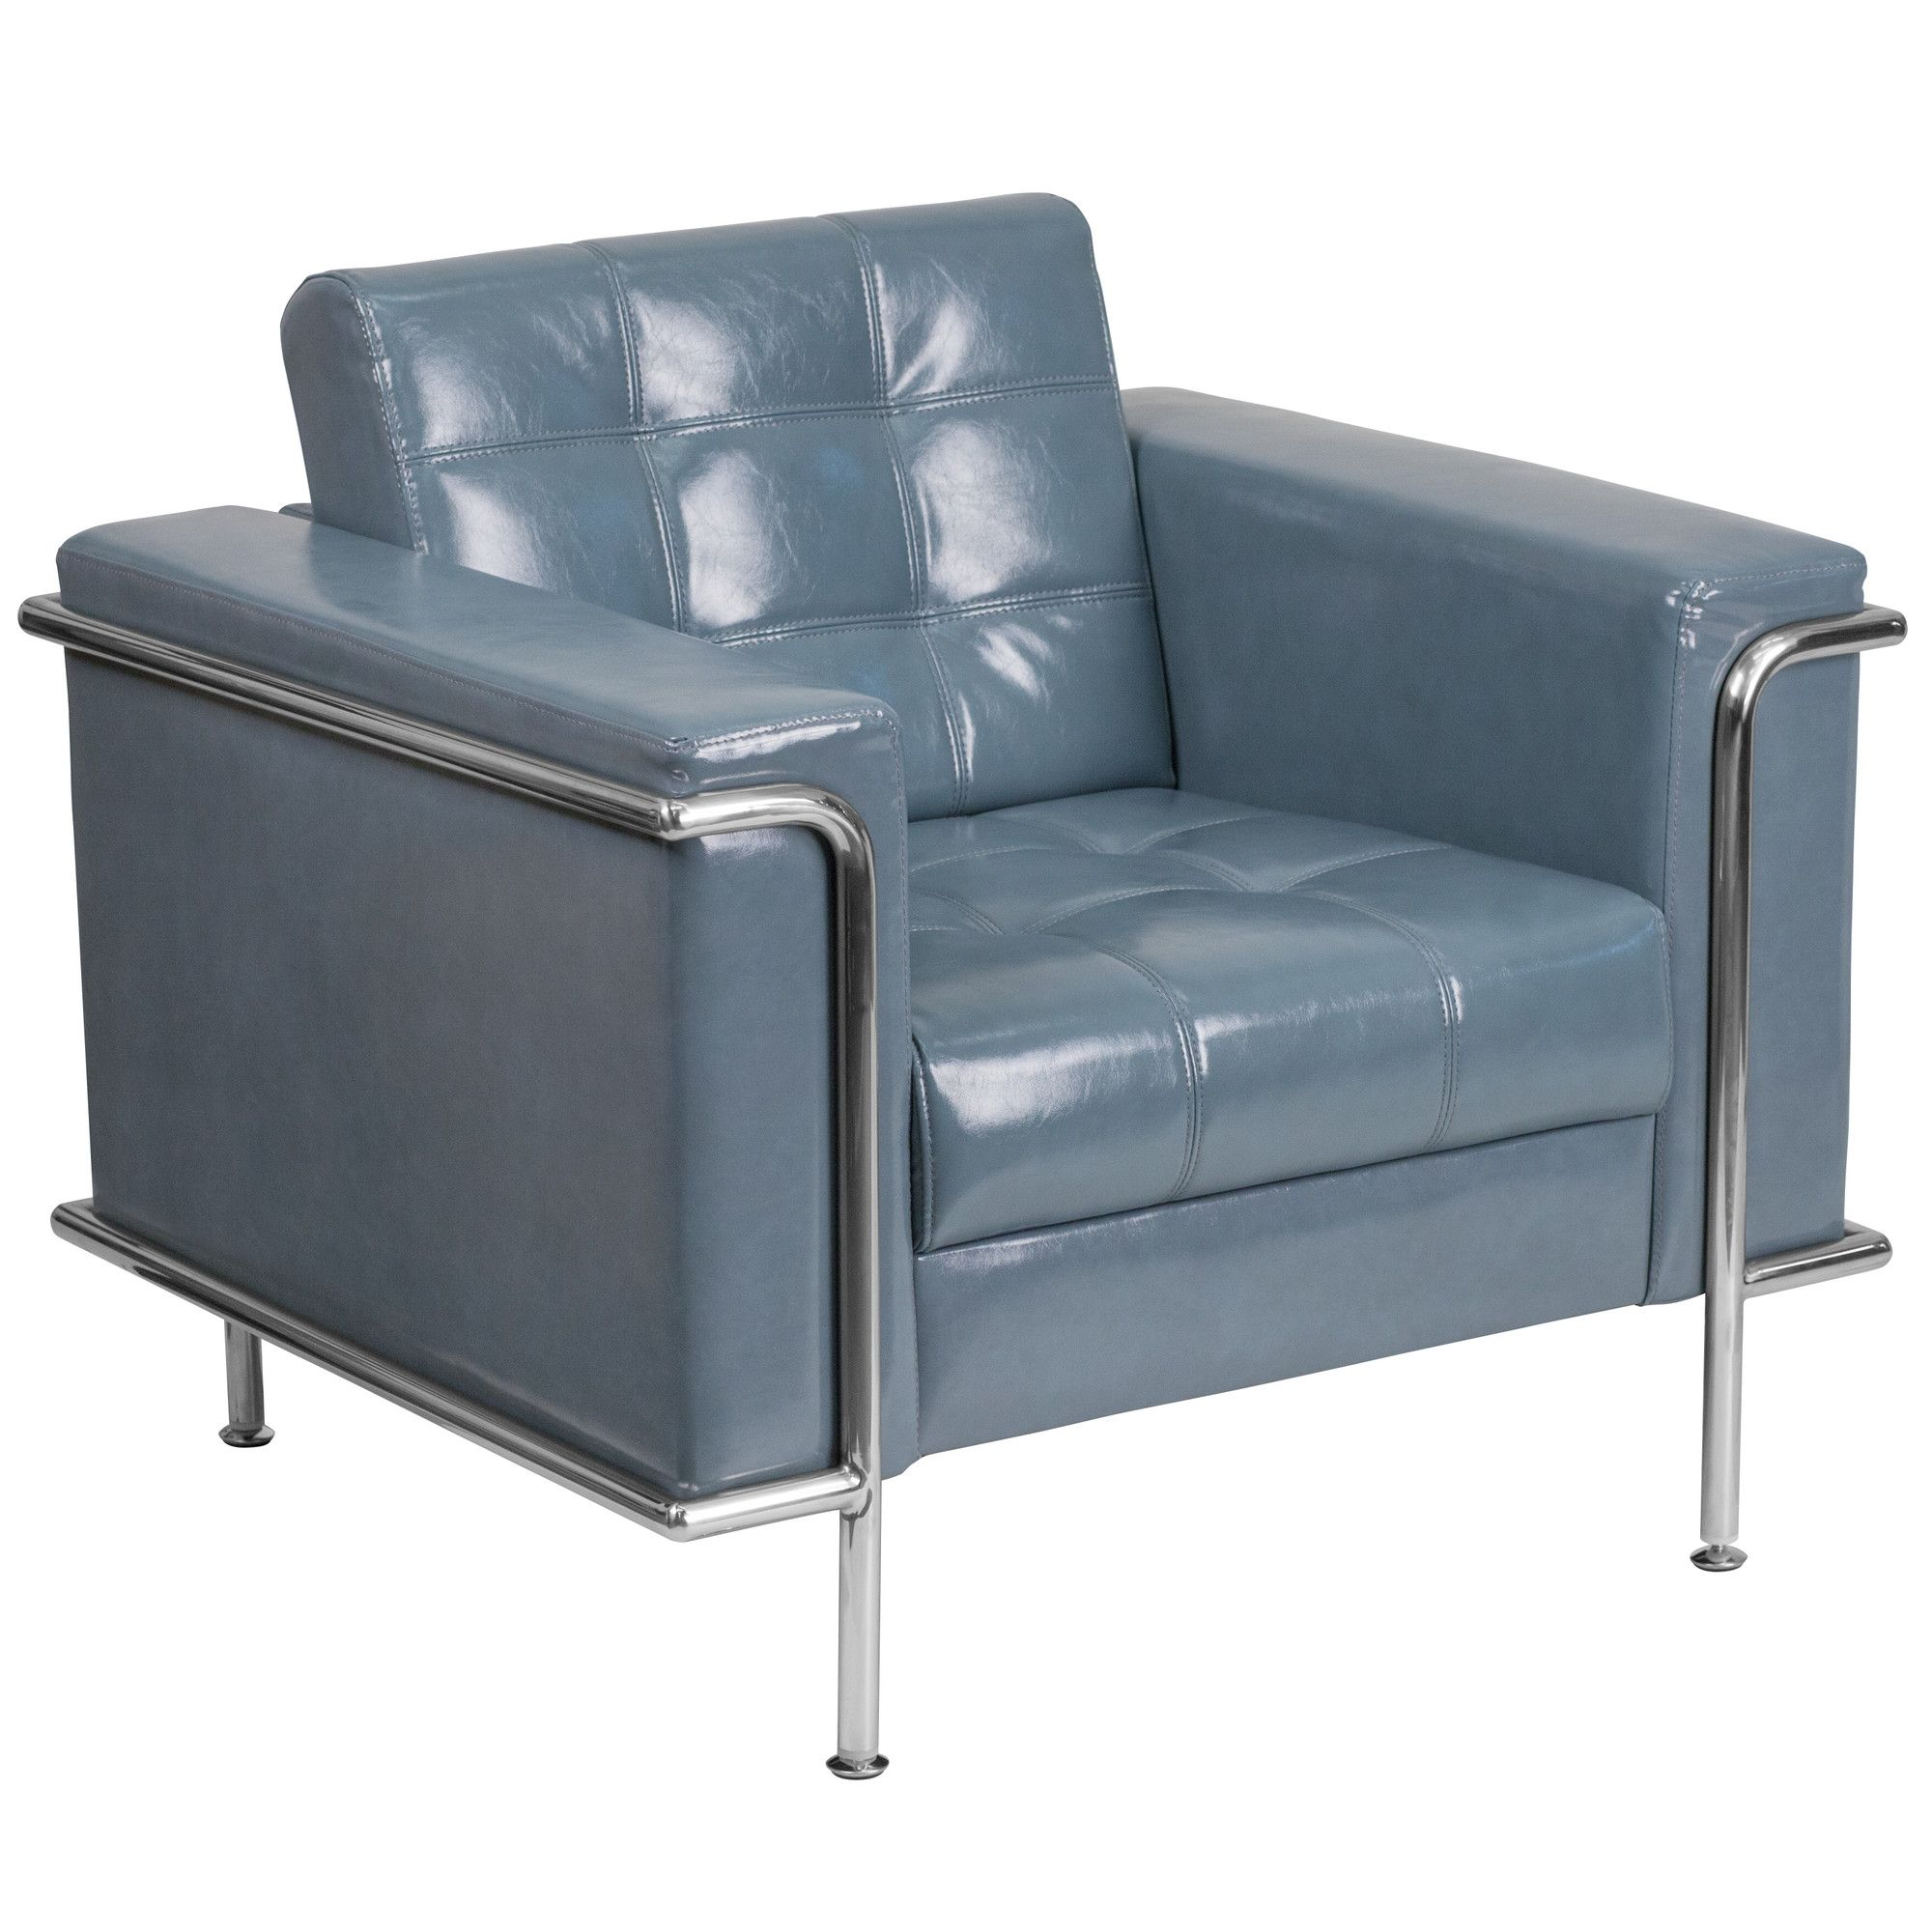 Hypnos leather guest chair